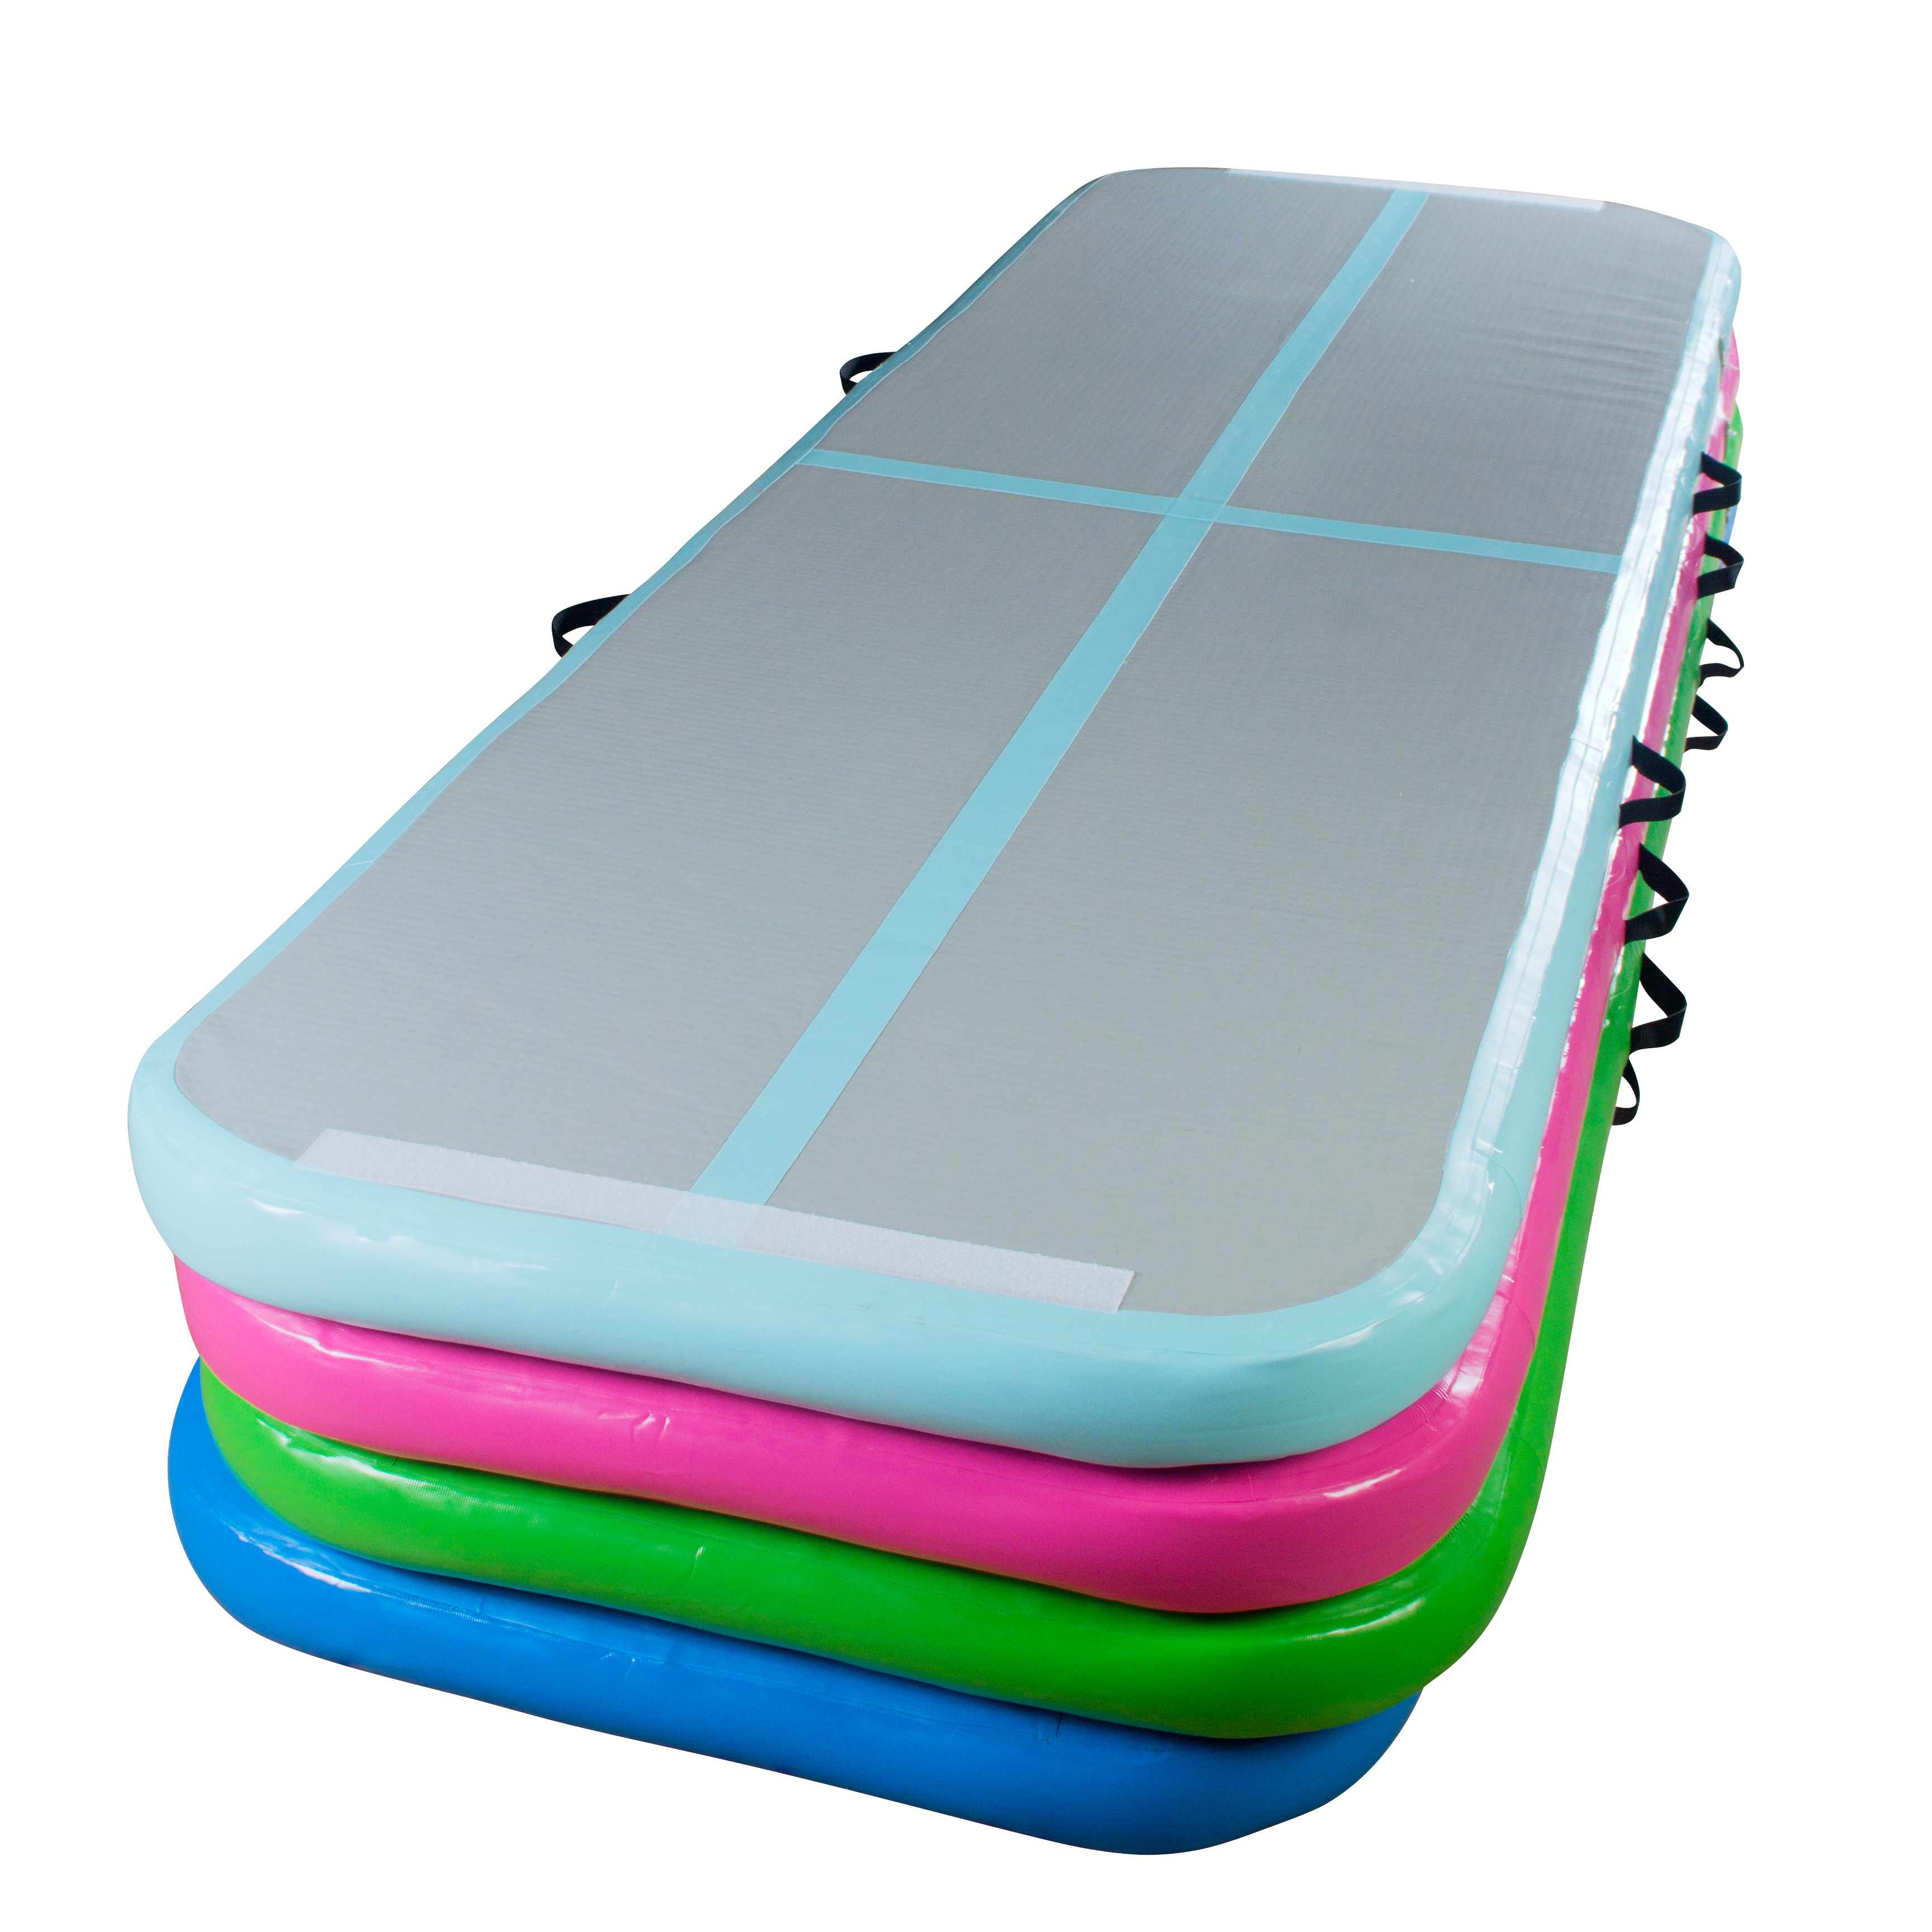 Trampoline Parts Center Coupon Code: Gym Sport Portable Air Track Floor Pad Home Trampoline